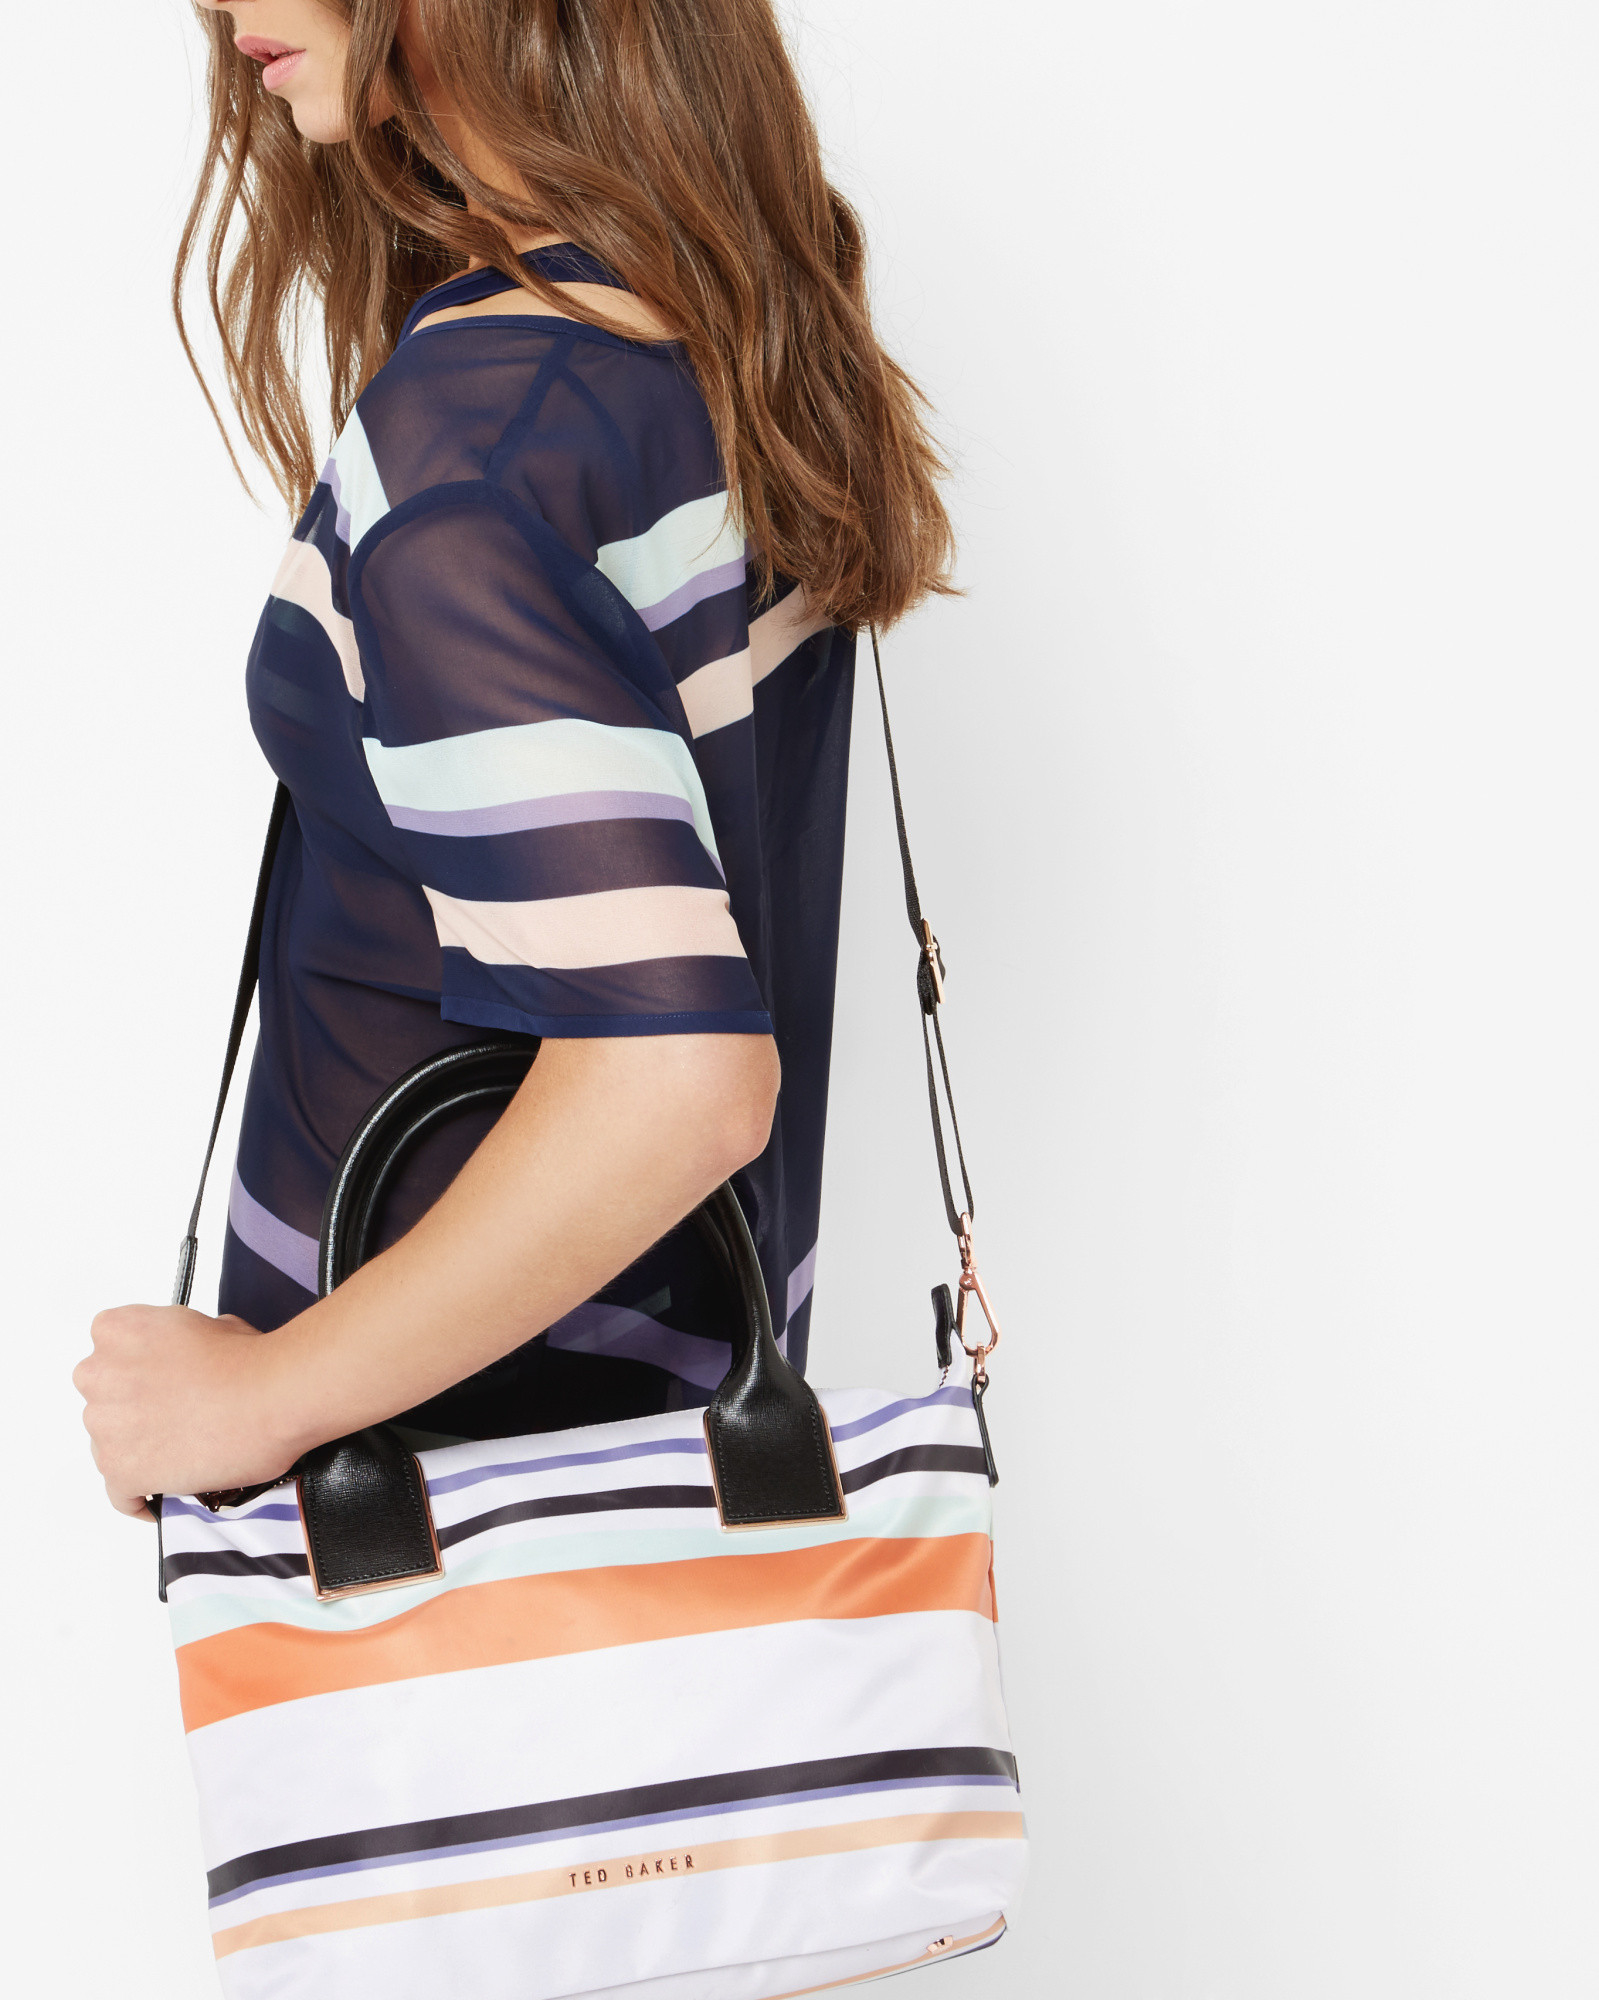 e8a4a225003f26 Ted Baker Stripe Small Tote Bag in Blue - Lyst